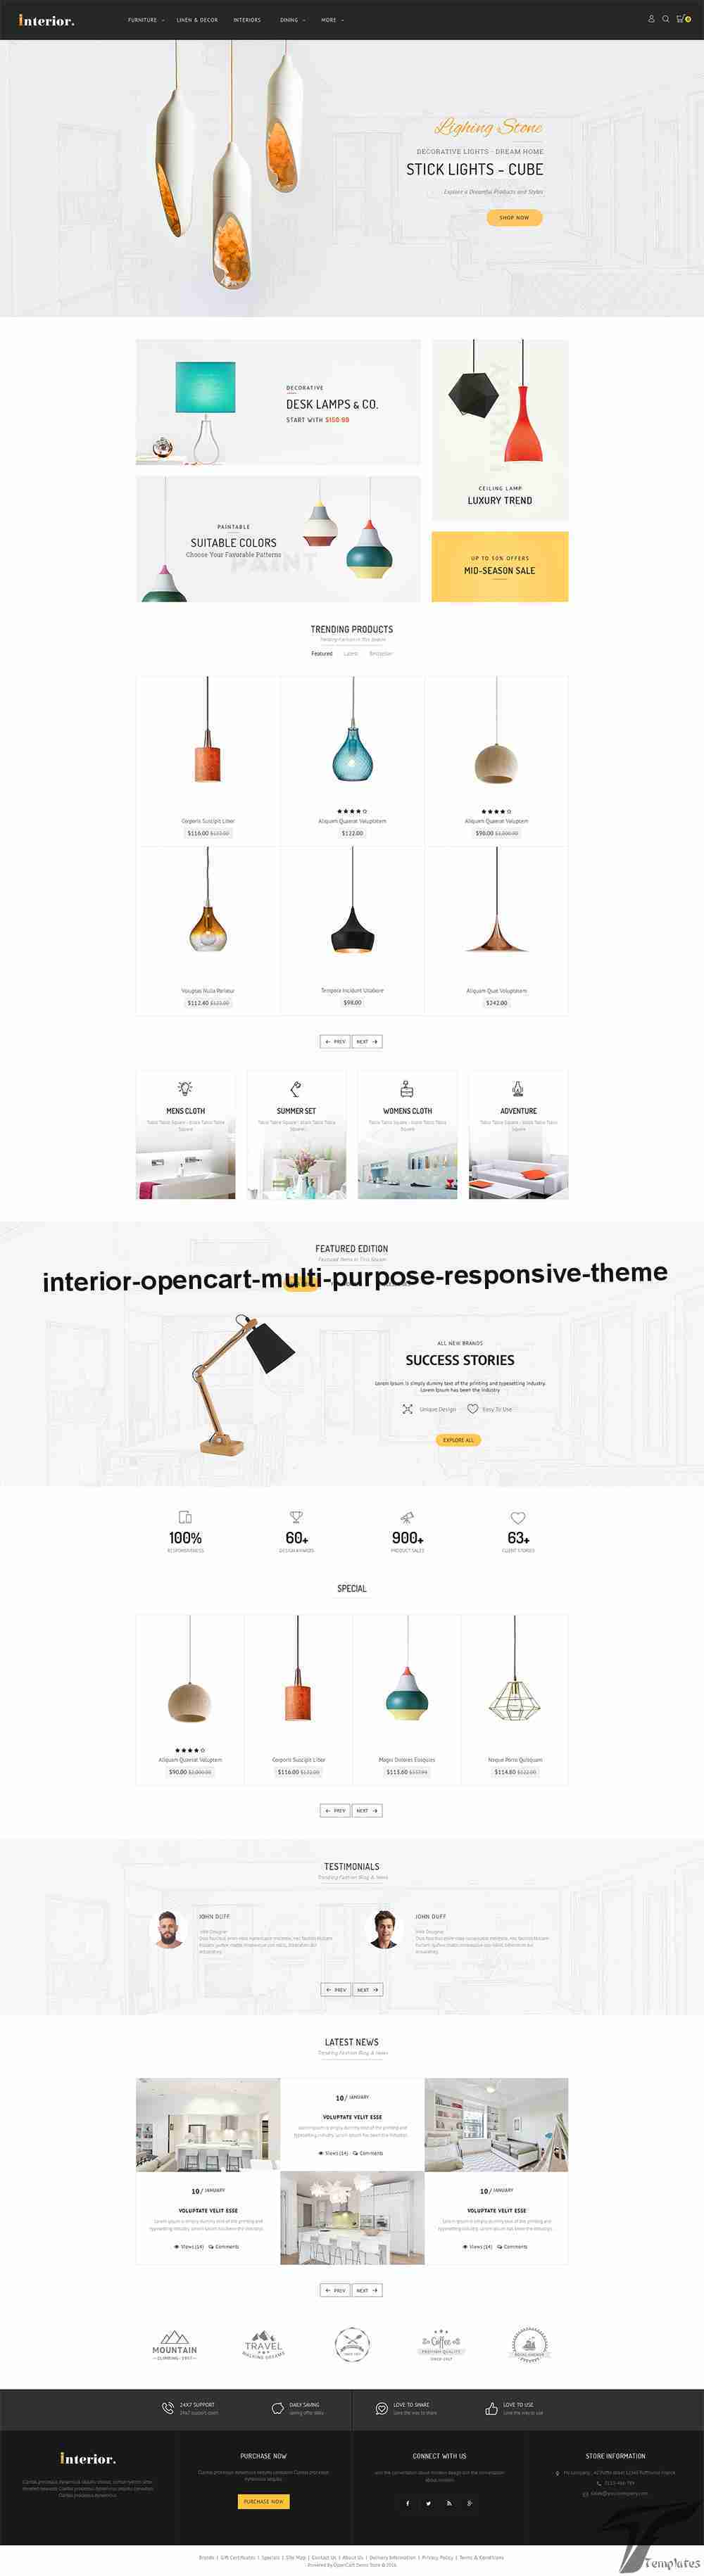 Interior - Opencart Multi Purpose Responsive Theme Screenshots